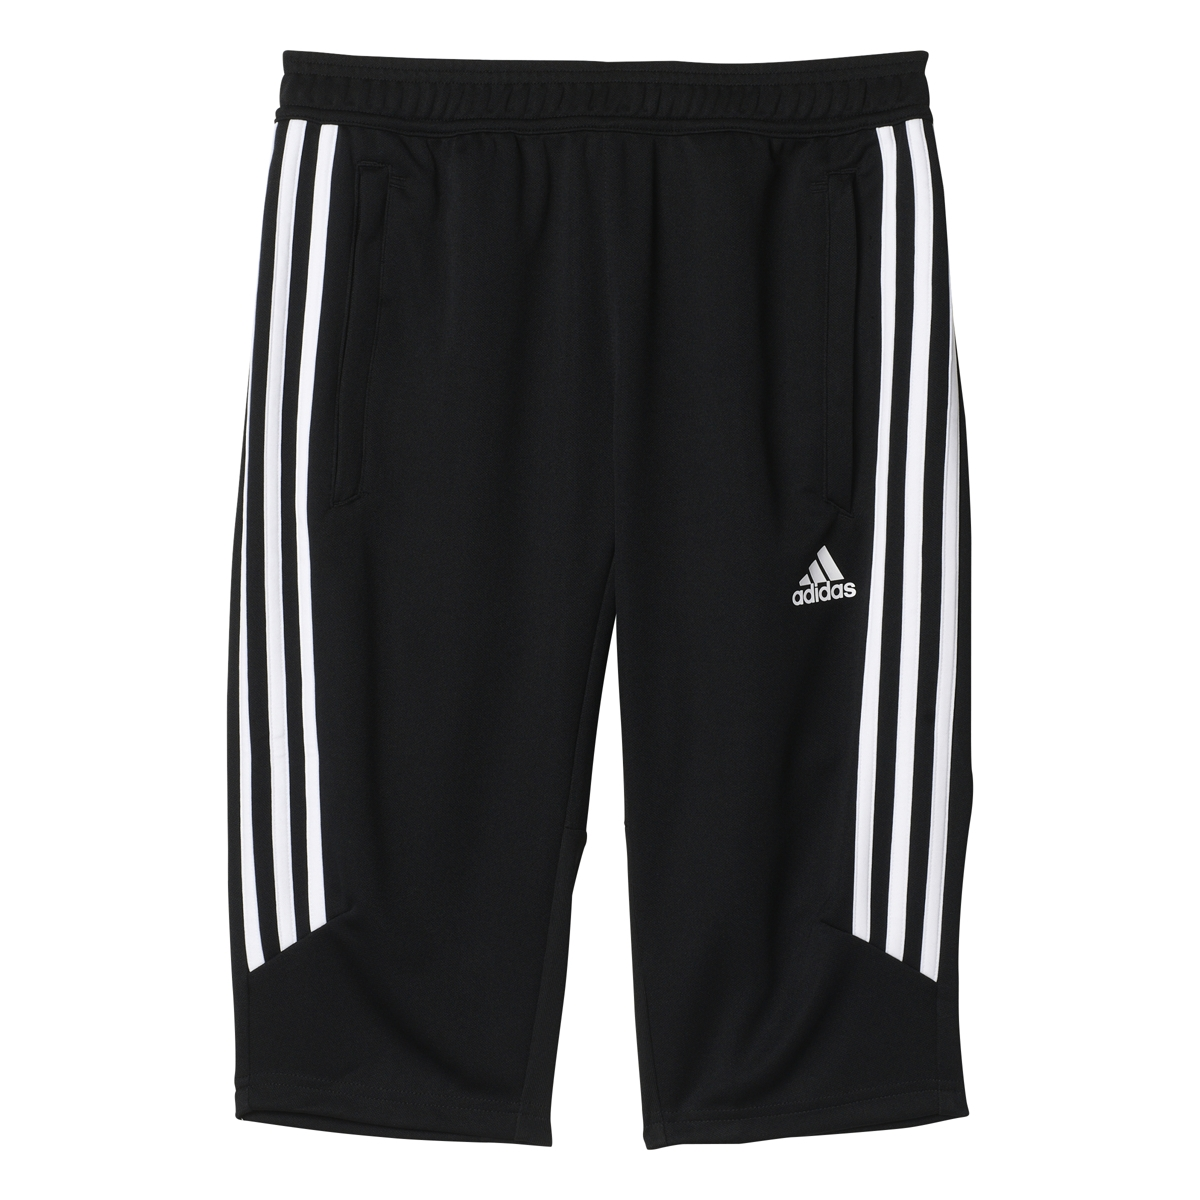 fef4872c3 Adidas Tiro 17 Youth 3/4 Training Pants (Black/White) | Adidas ...